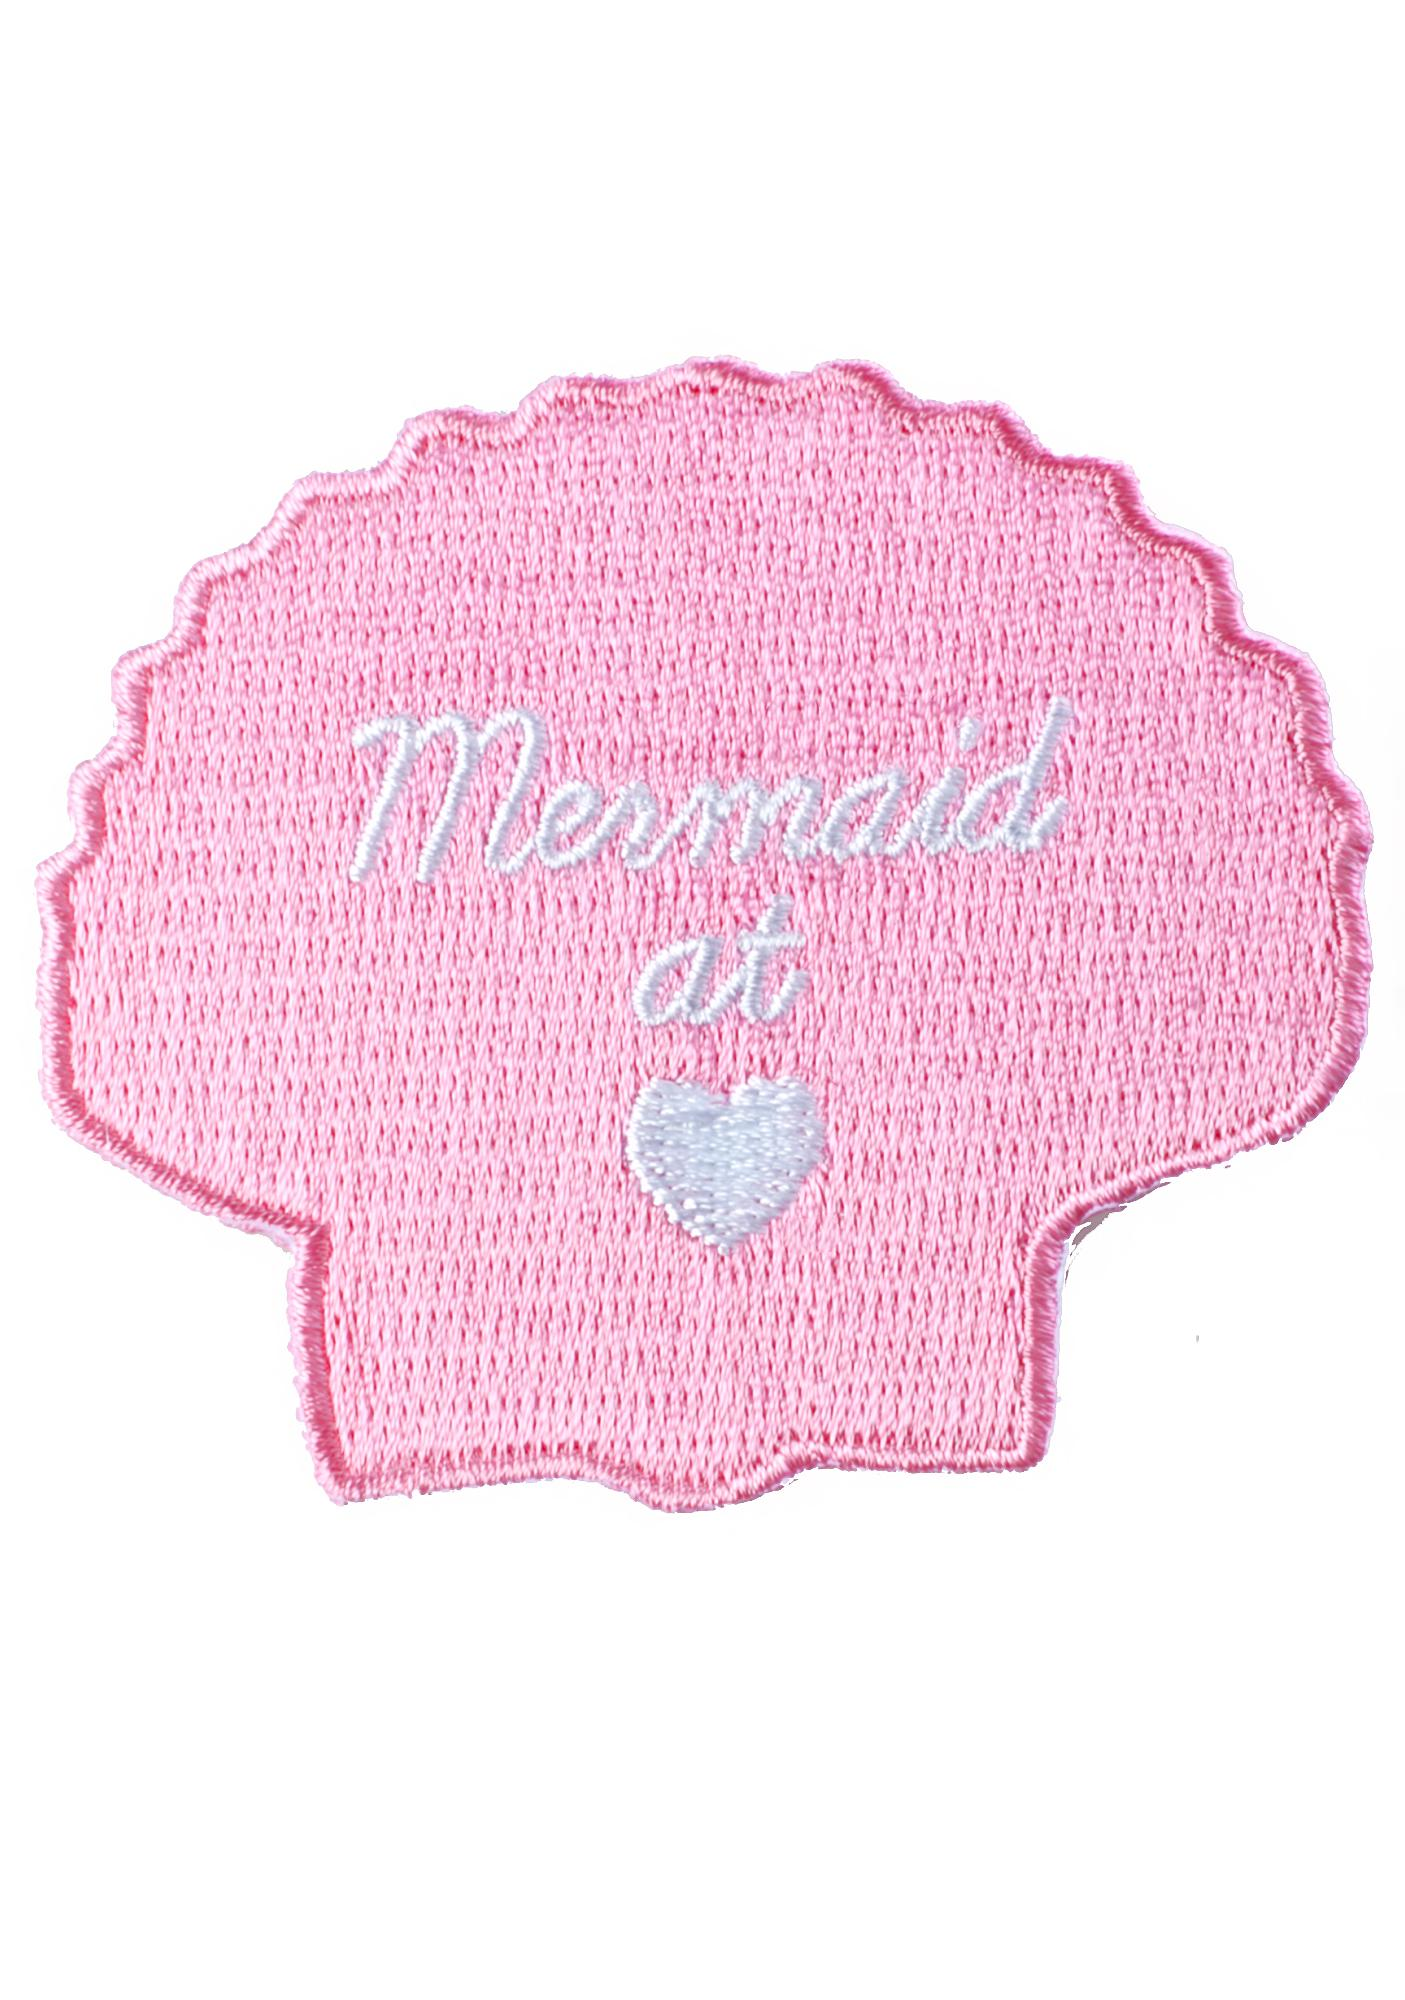 Mermaid At Heart Patch